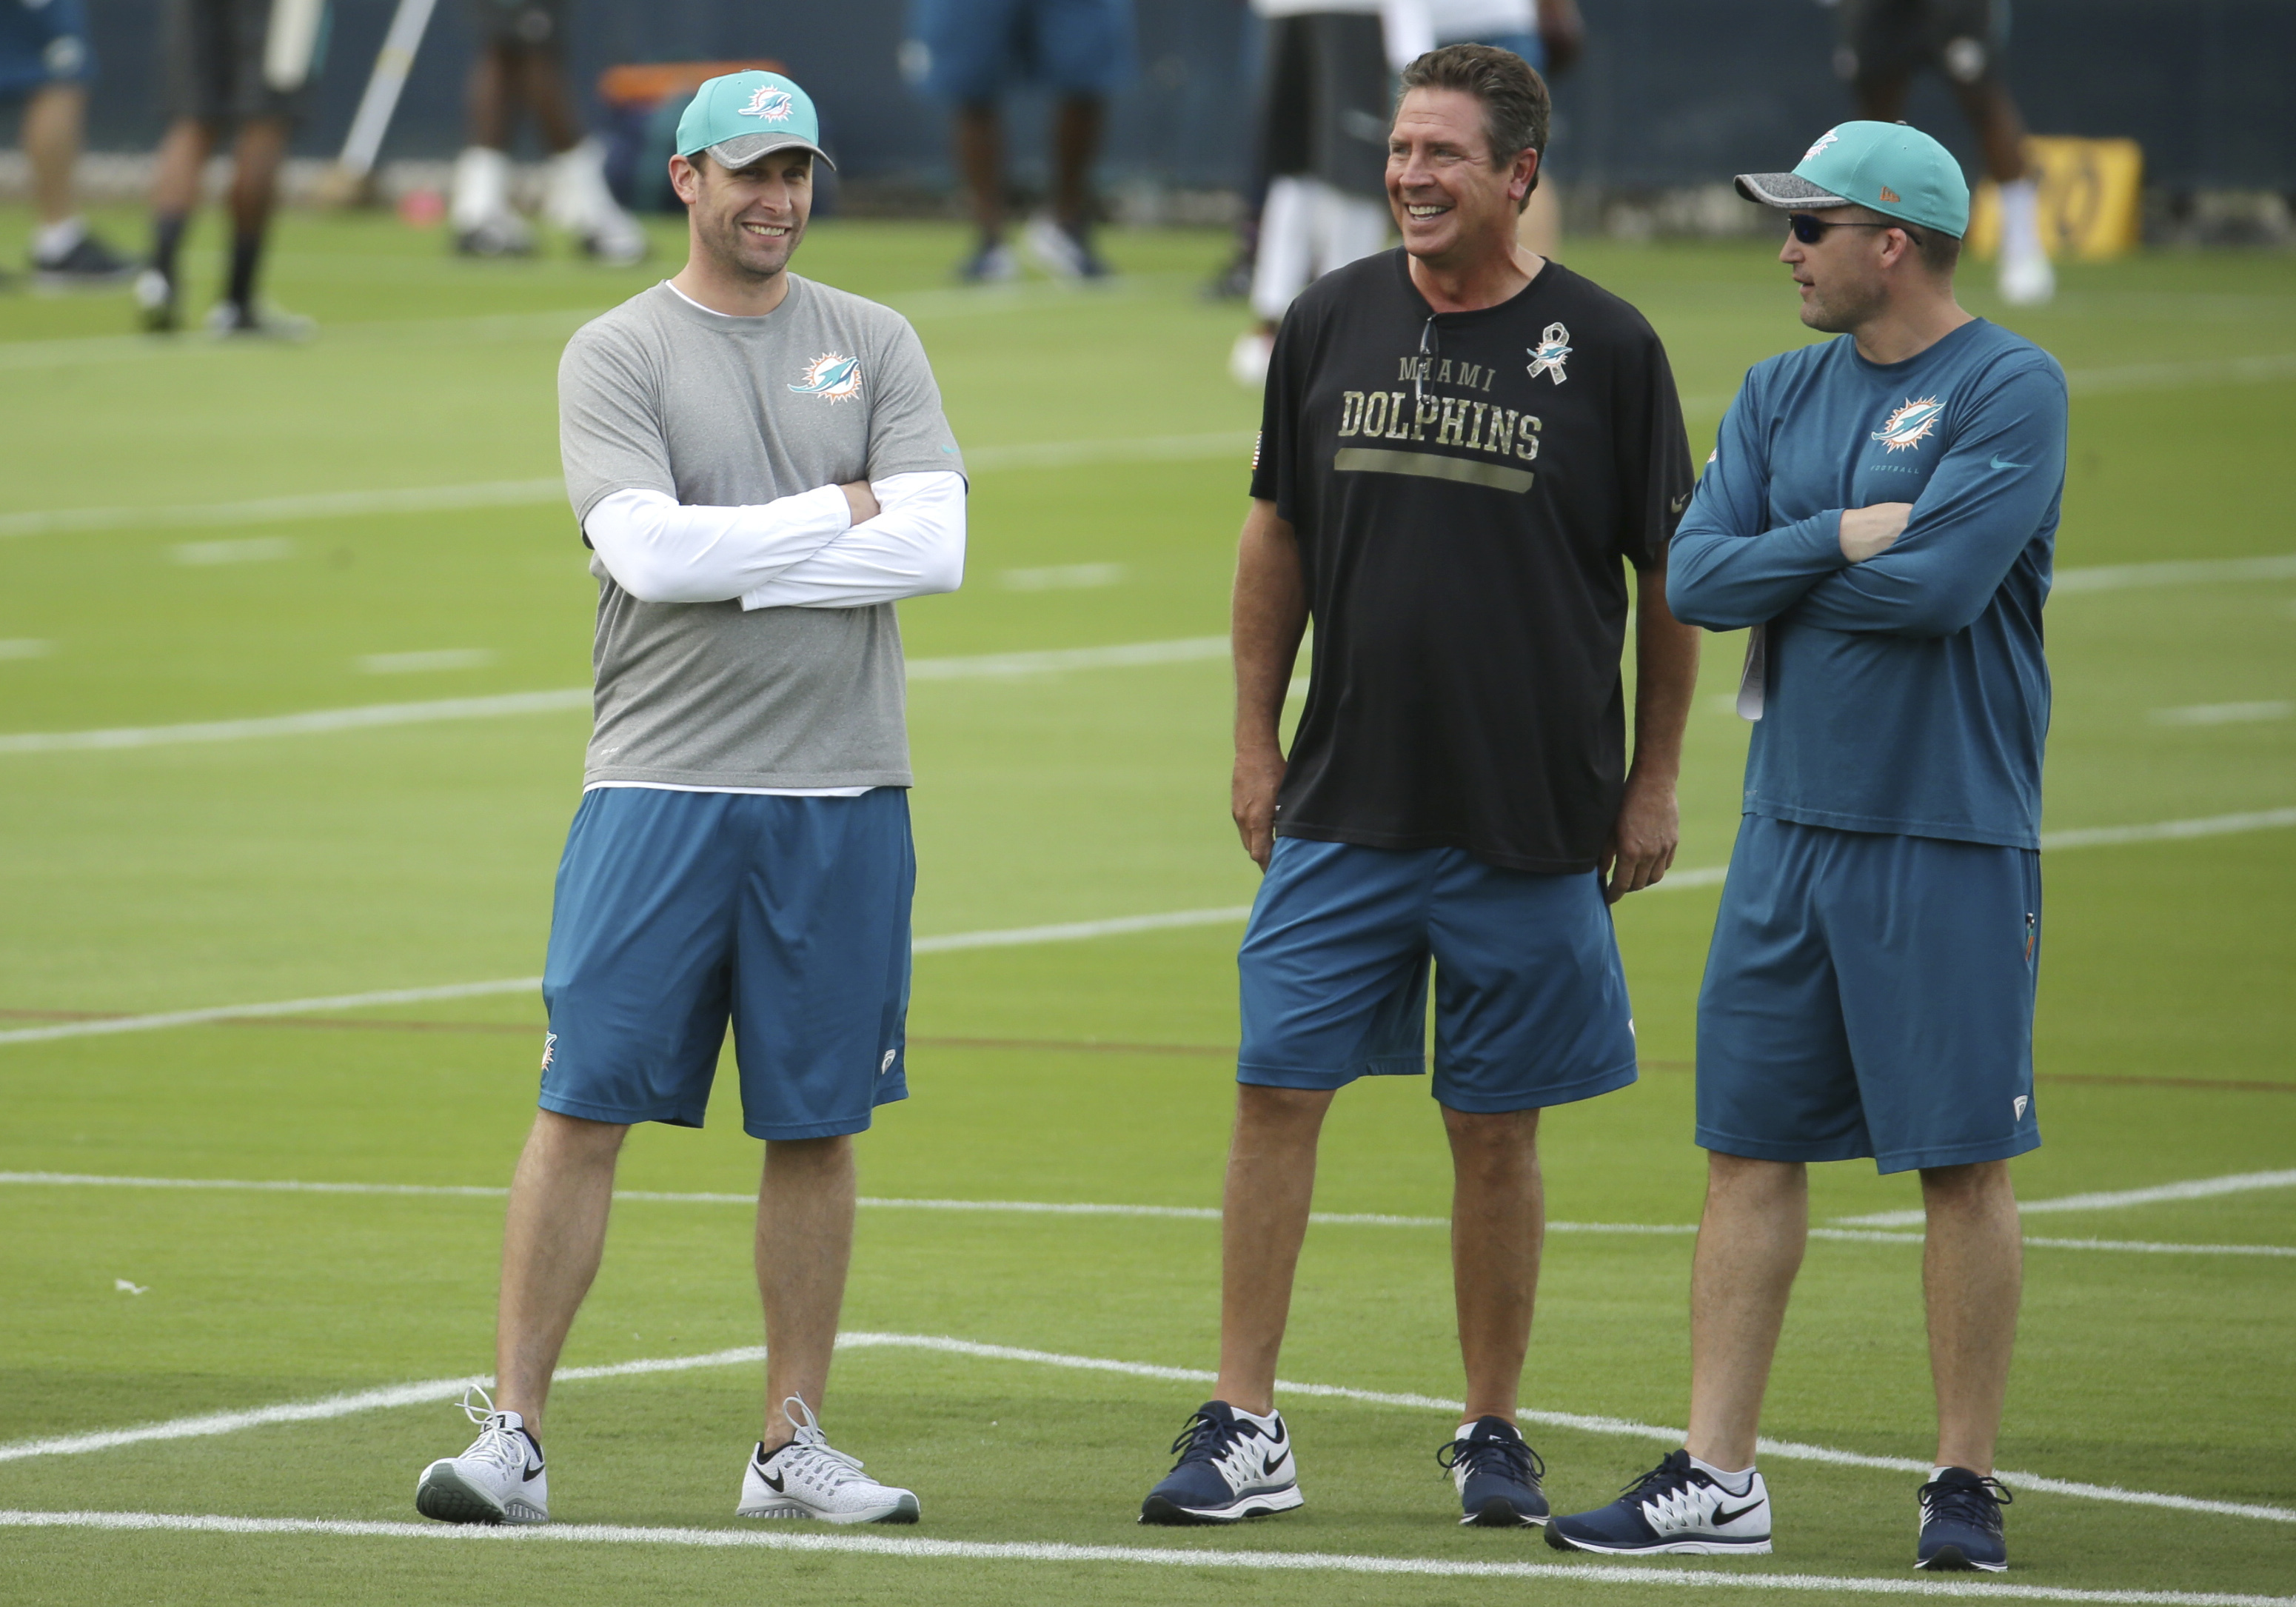 Miami Dolphins head coach Adam Gase, left, talks with former Dolphins quarterback Dan Marino, center, and assistant head coach Darren Rizzi, right, during Miami Dolphins football voluntary veterans minicamp, Tuesday, April 26, 2016, in Davie, Fla. (AP Pho